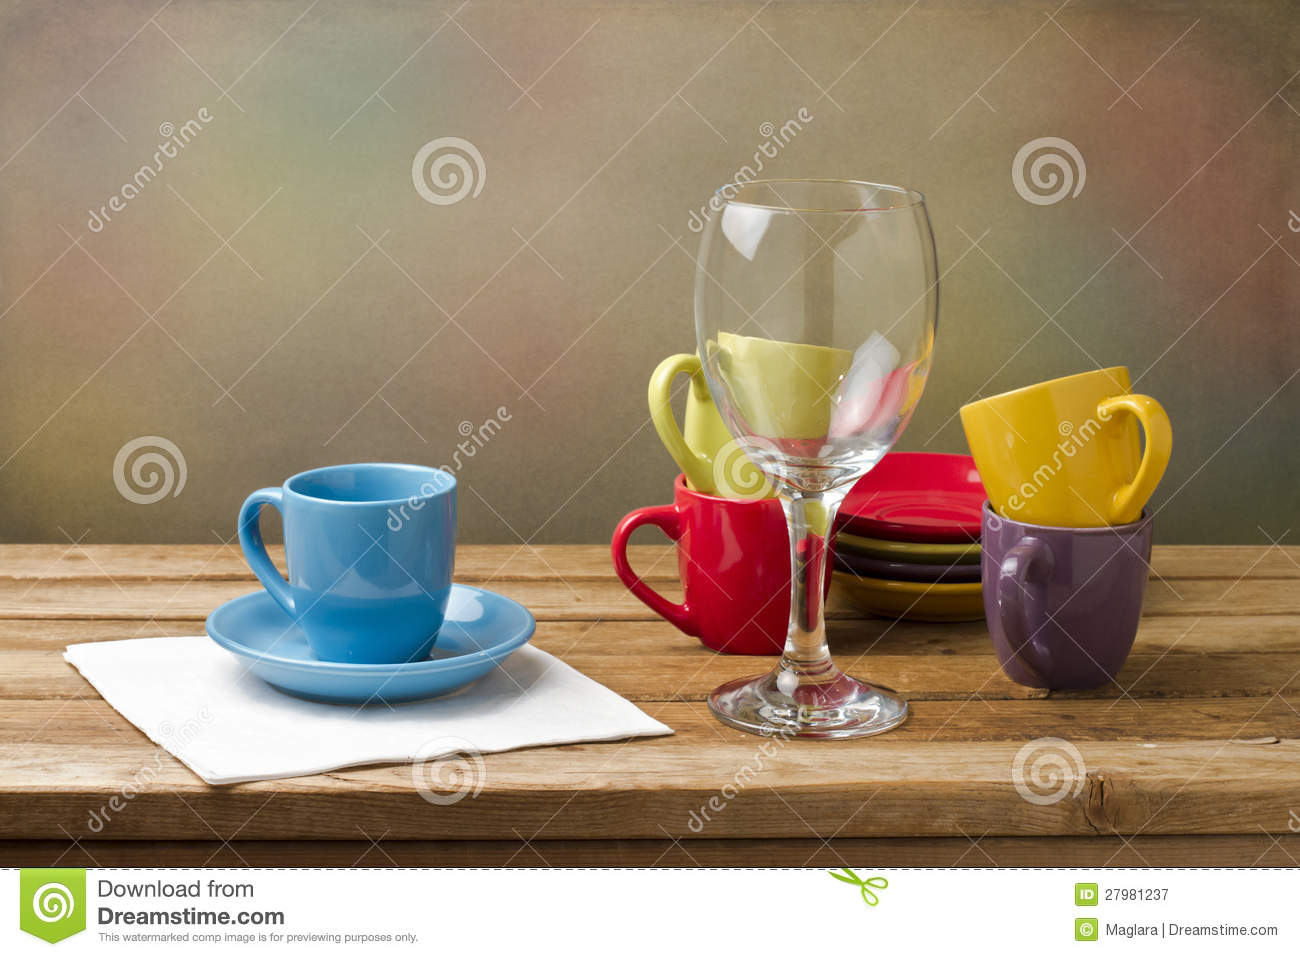 Still Life With Colorful Tableware Royalty Free Stock